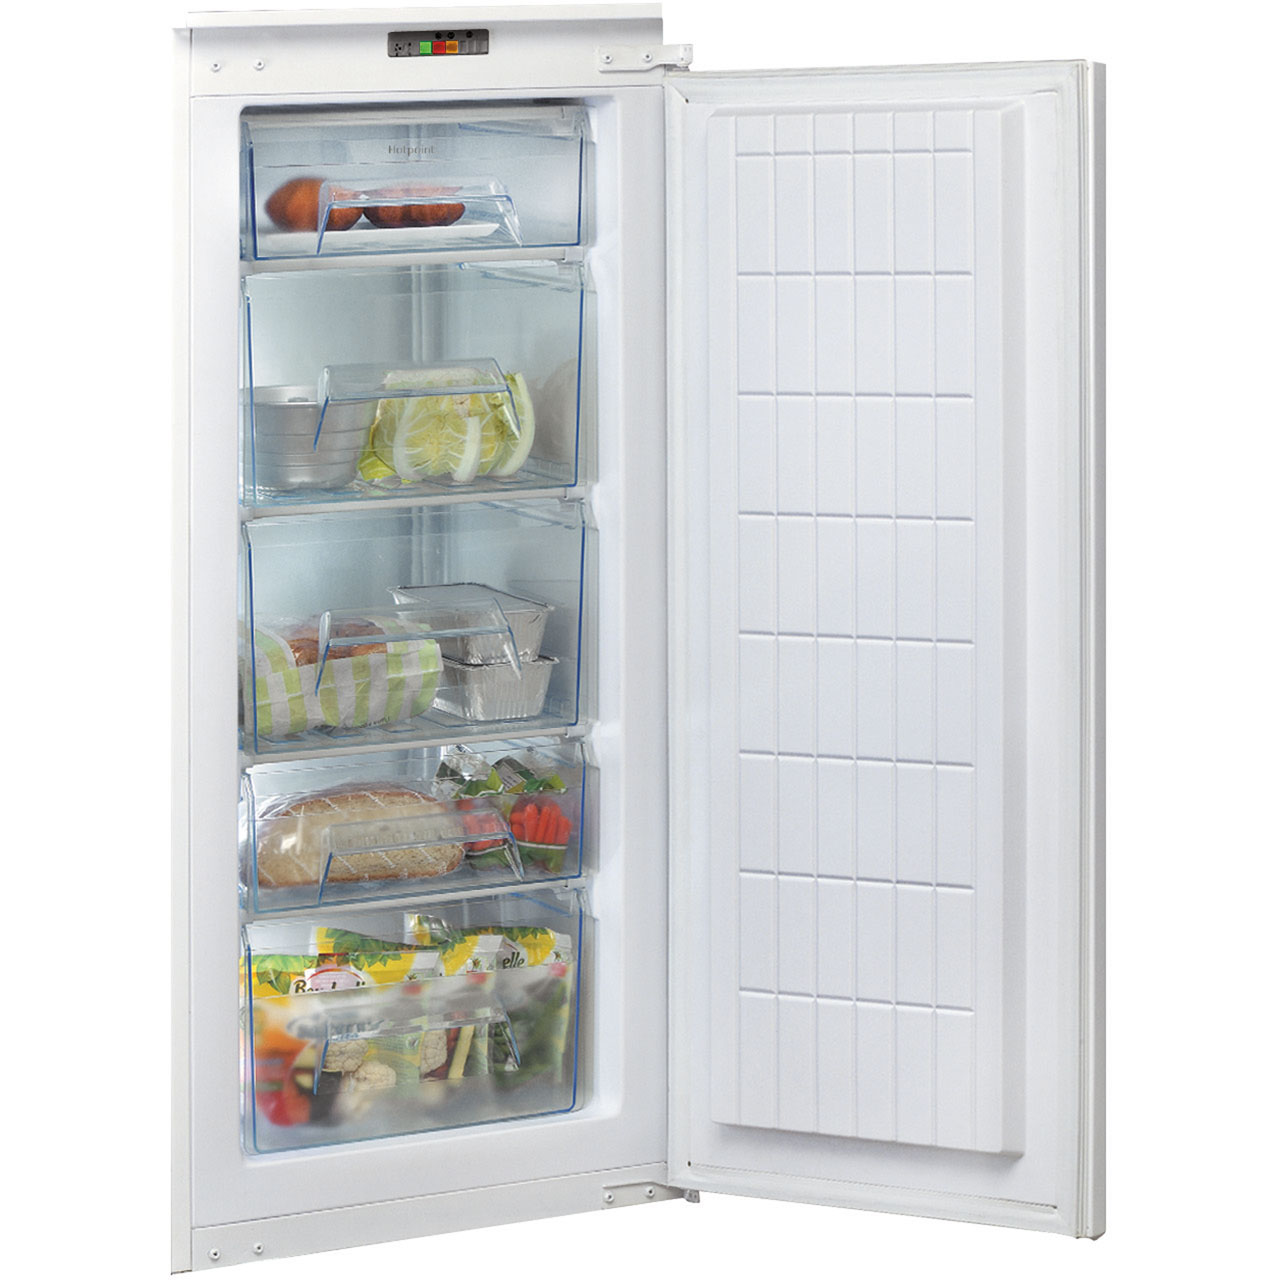 Hotpoint U12A1D/H.1 Integrated Upright Freezer review